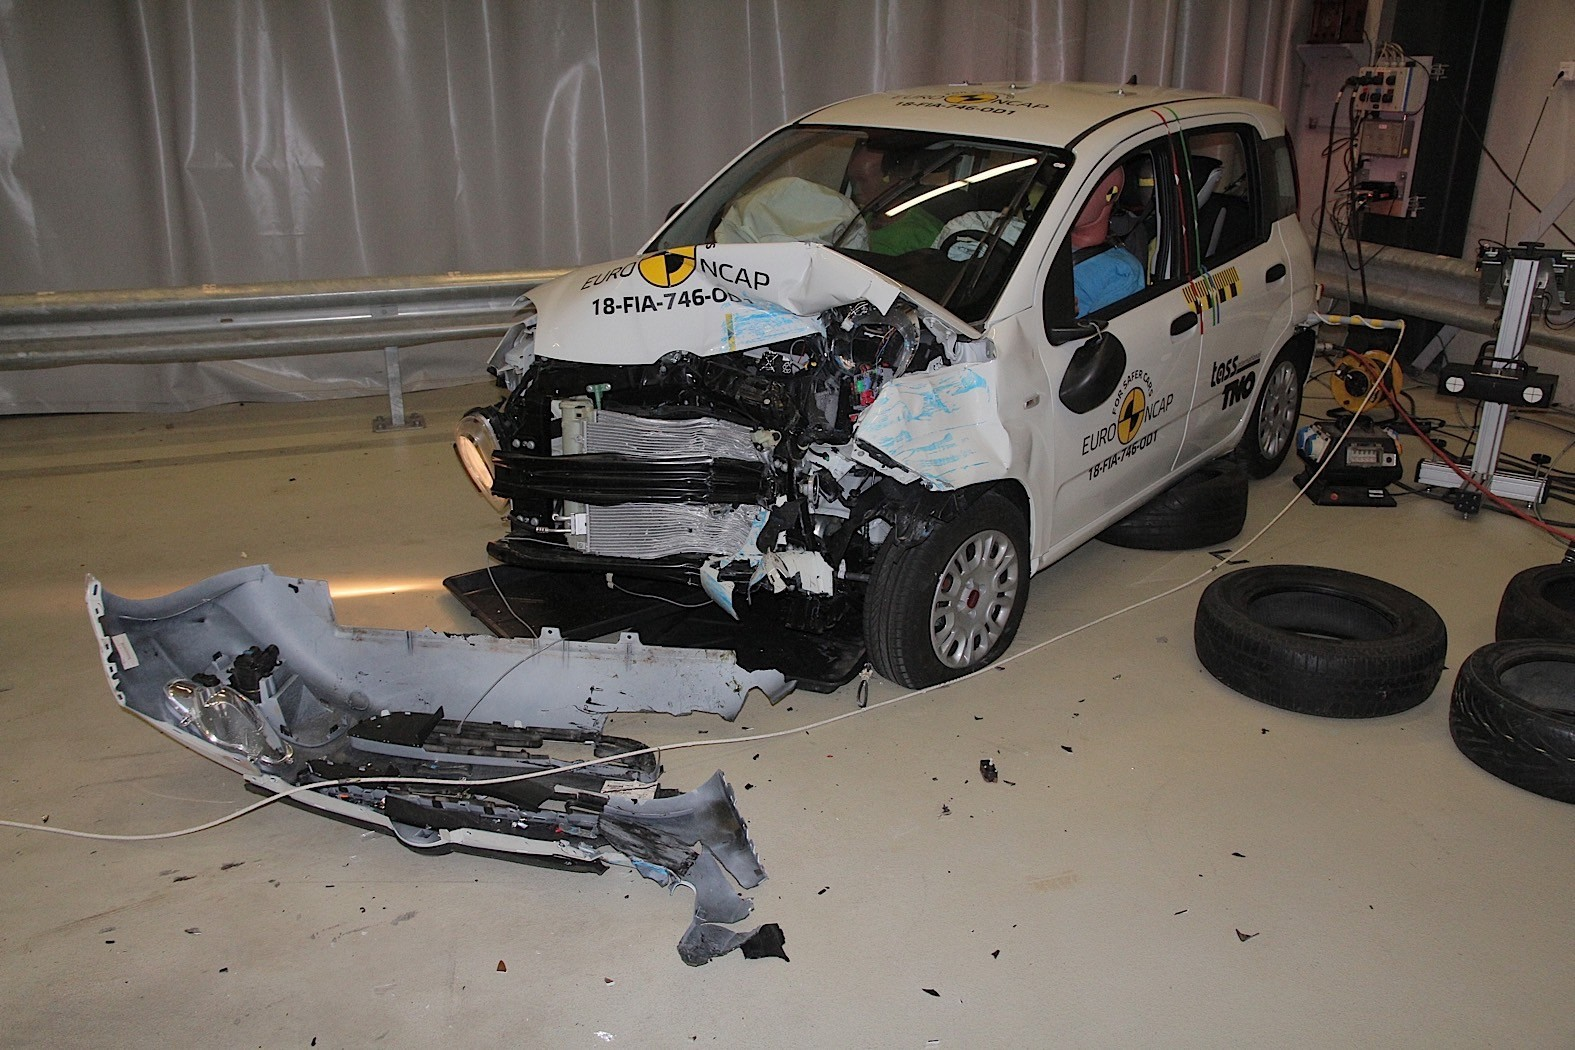 Fiat Panda scores zero stars in latest Euro NCAP safety tests